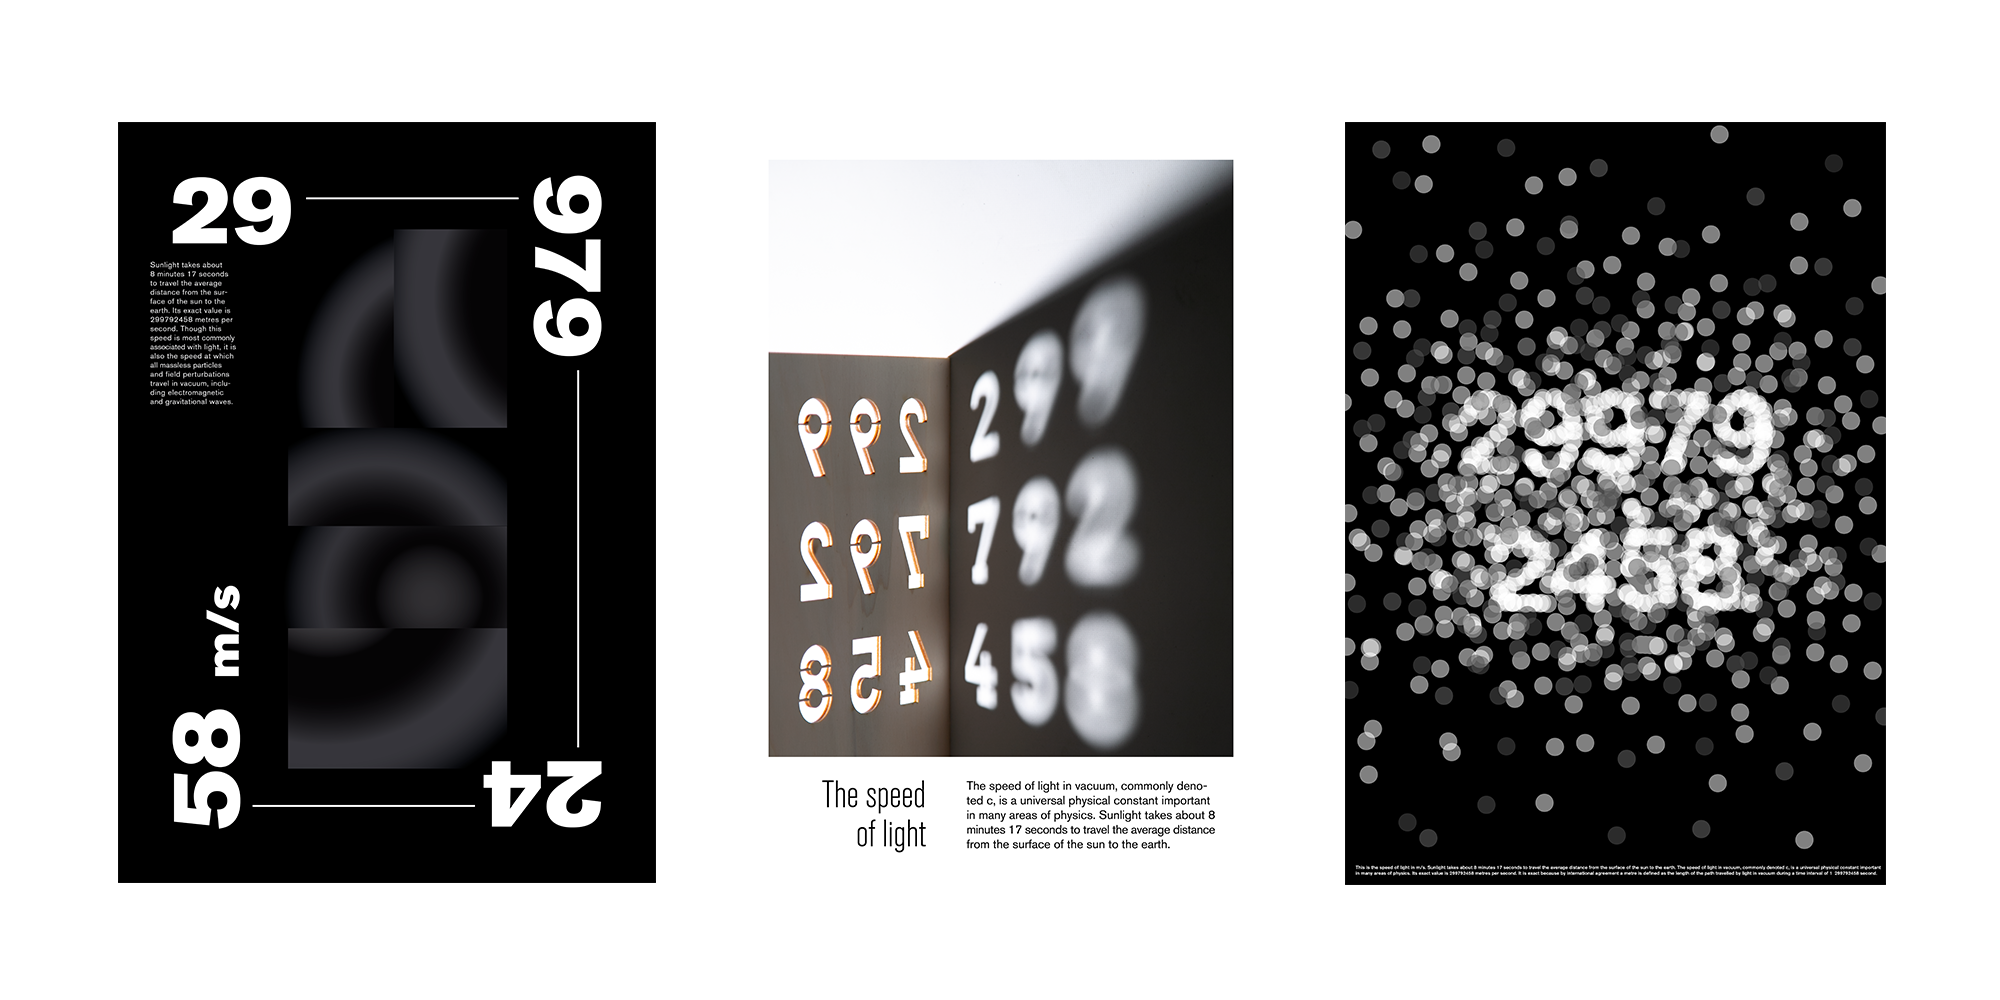 A poster series about speed of light.